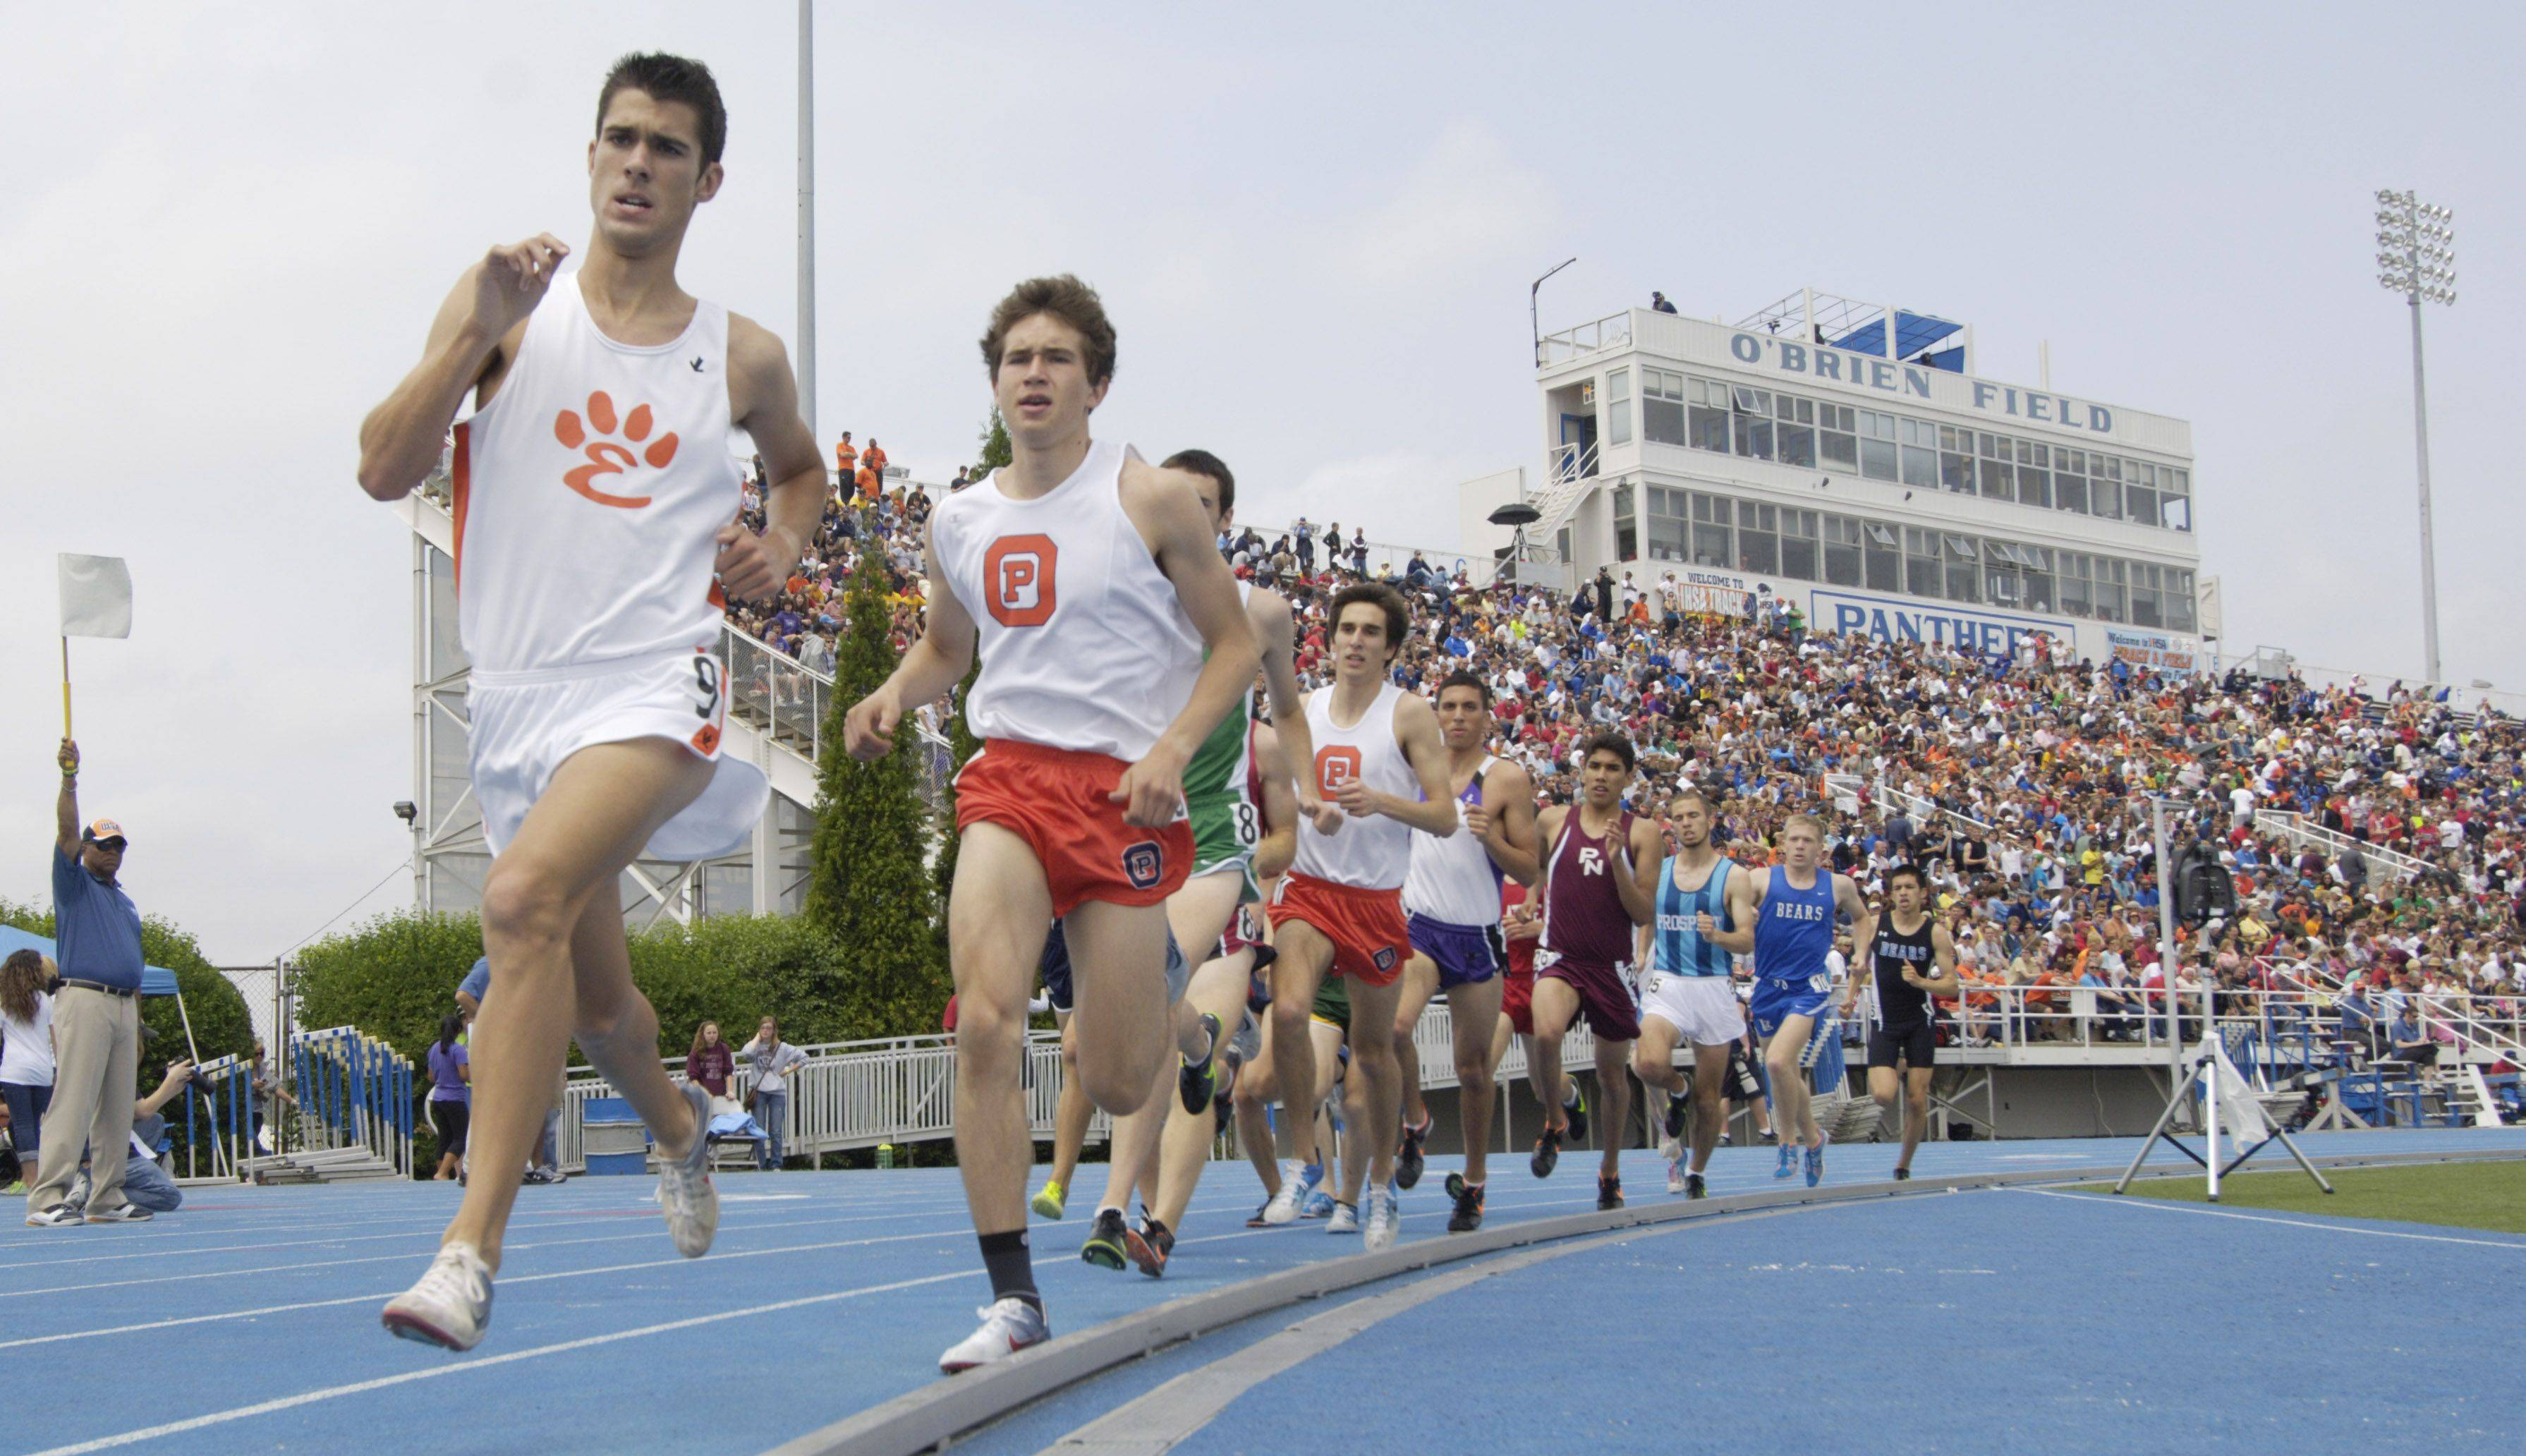 Runners compete in the class 3A 3,200-meter run during the boys state track finals in Charleston Saturday.